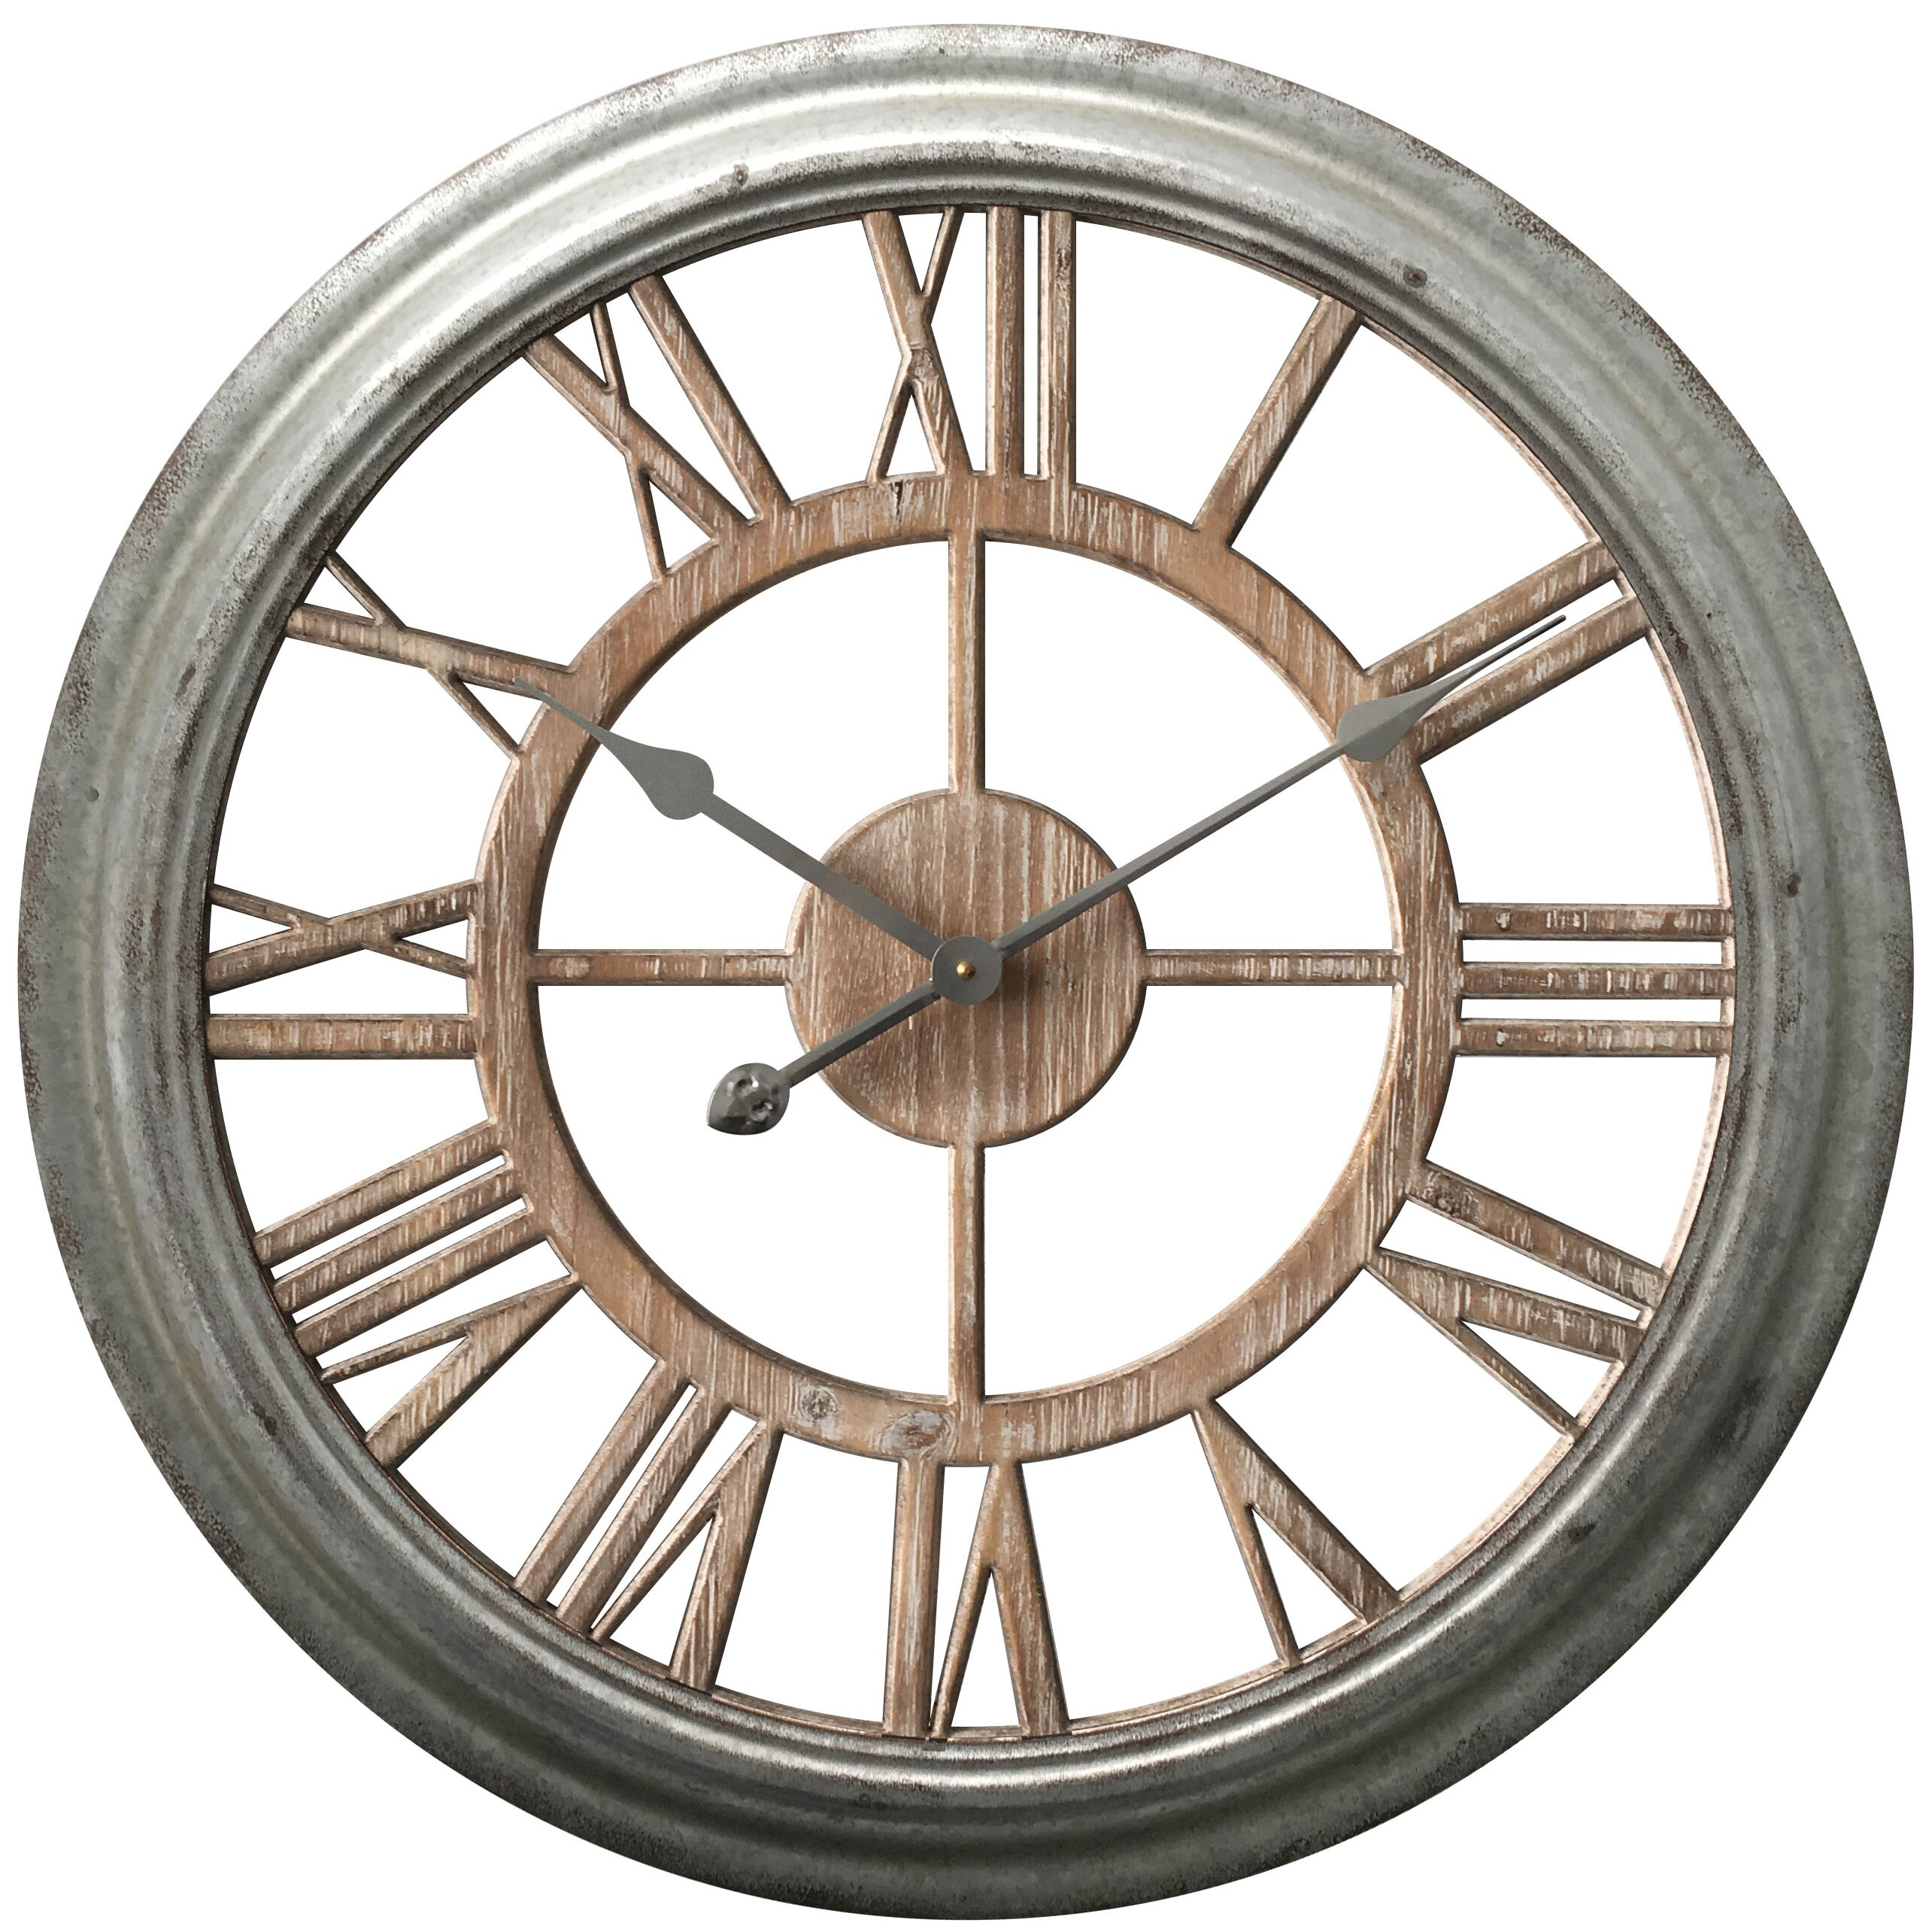 Laurel foundry modern farmhouse oversized wall - Oversized modern wall clock ...